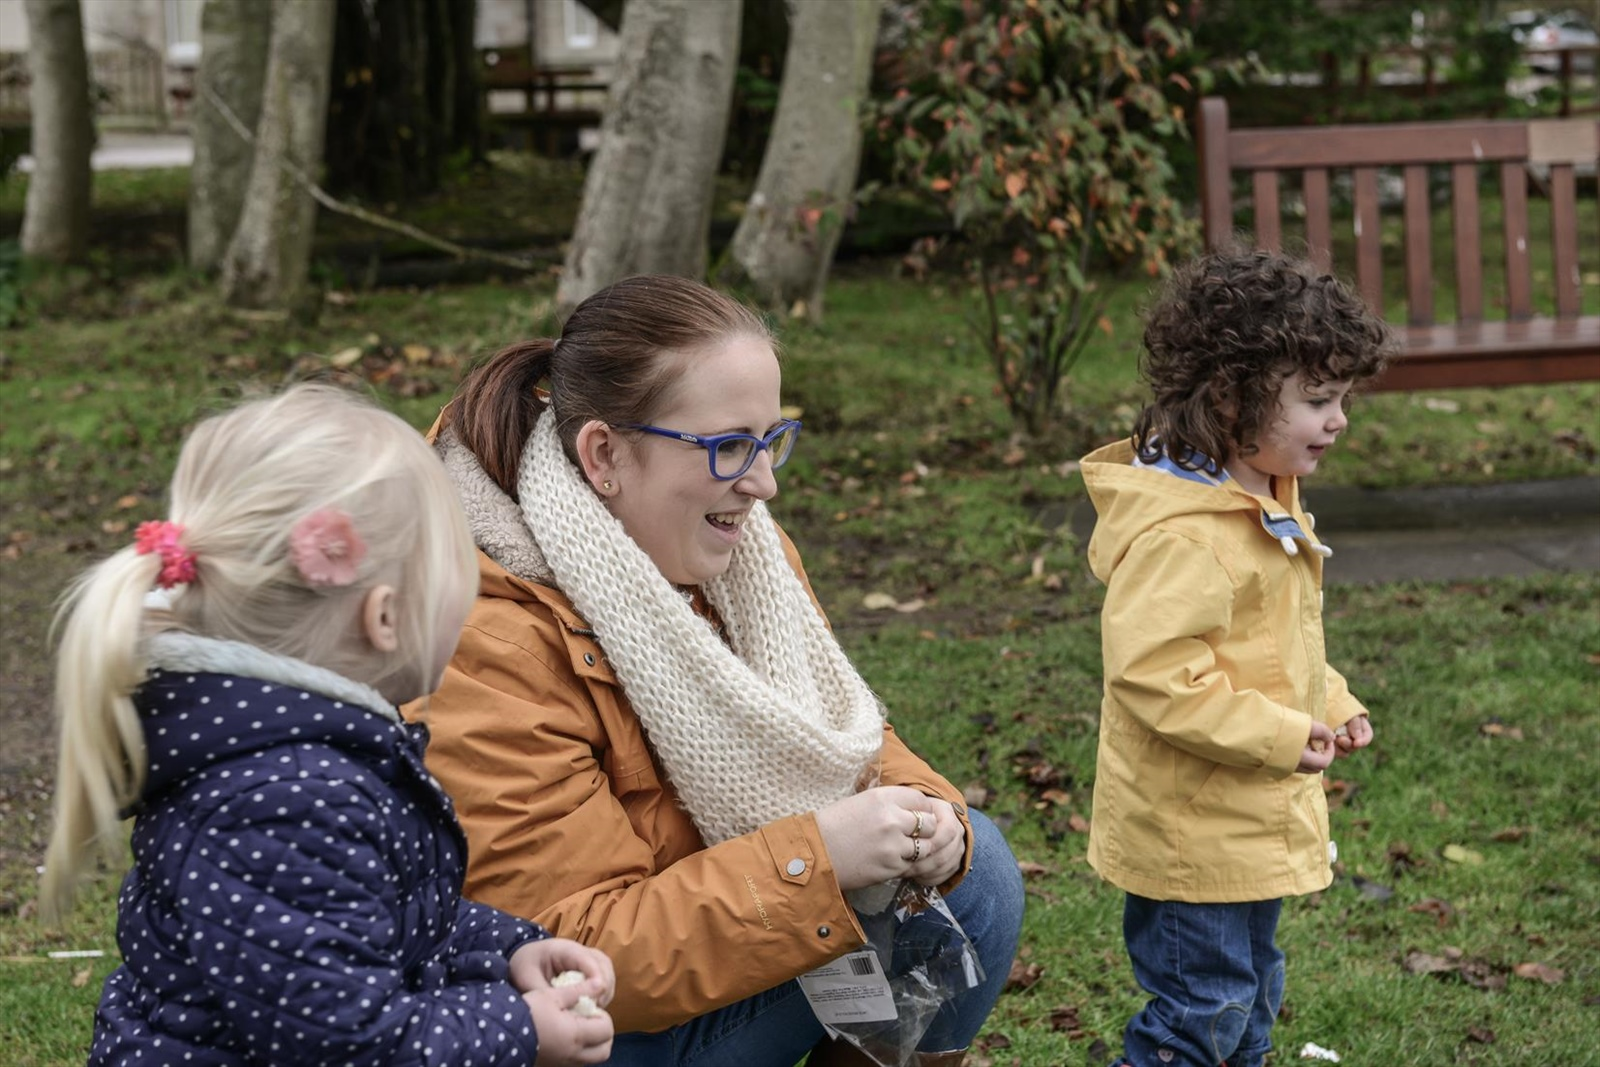 Childminders Delivering Funded ELC:  Applications open 15 January for a new Outdoor Clothing Fund